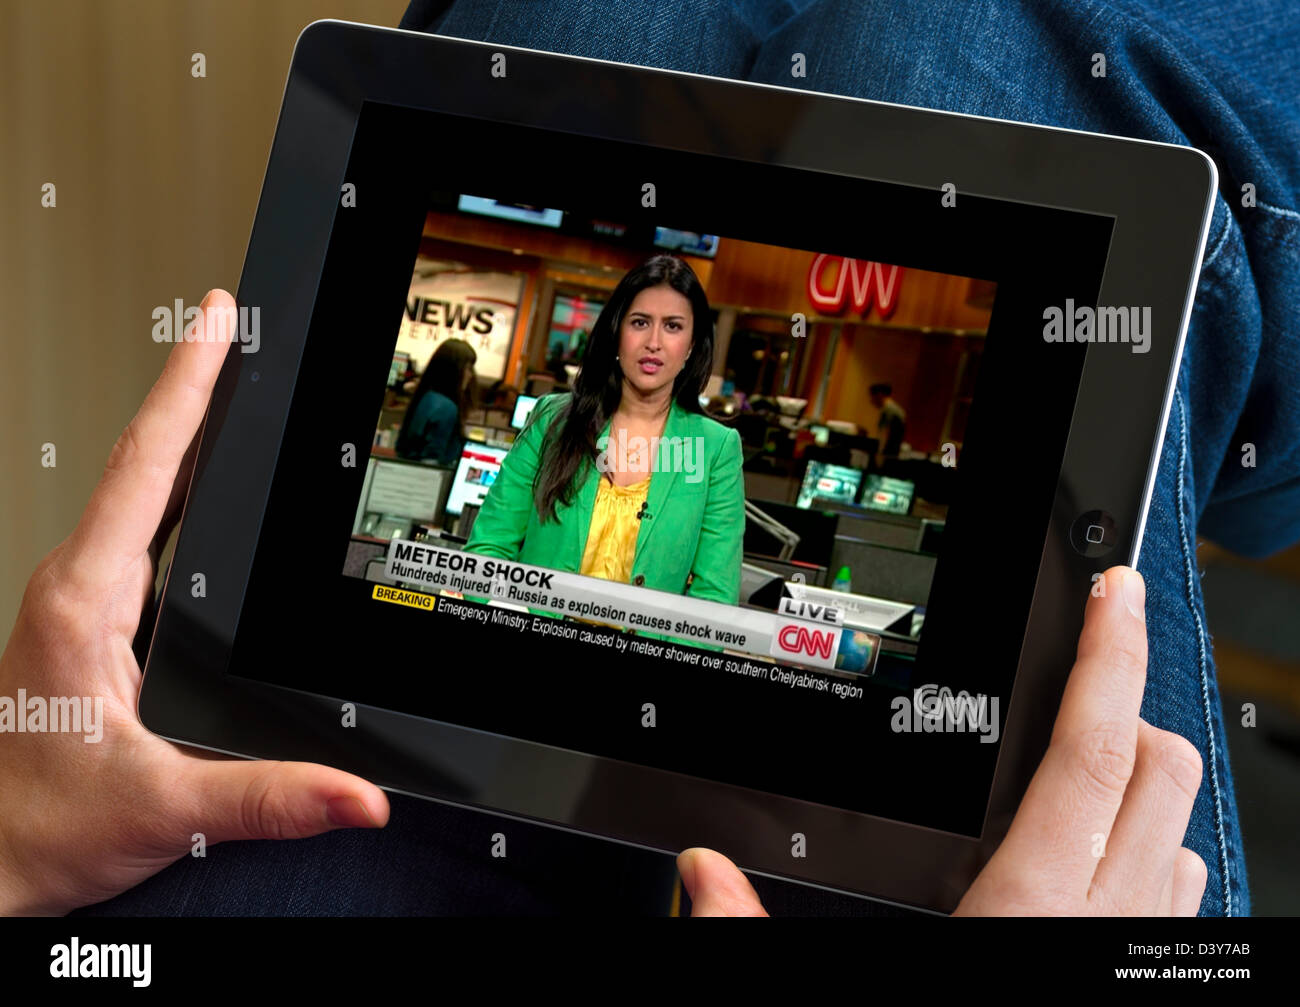 Watching a news broadcast on the CNN News website via a 4th generation Apple iPad - Stock Image